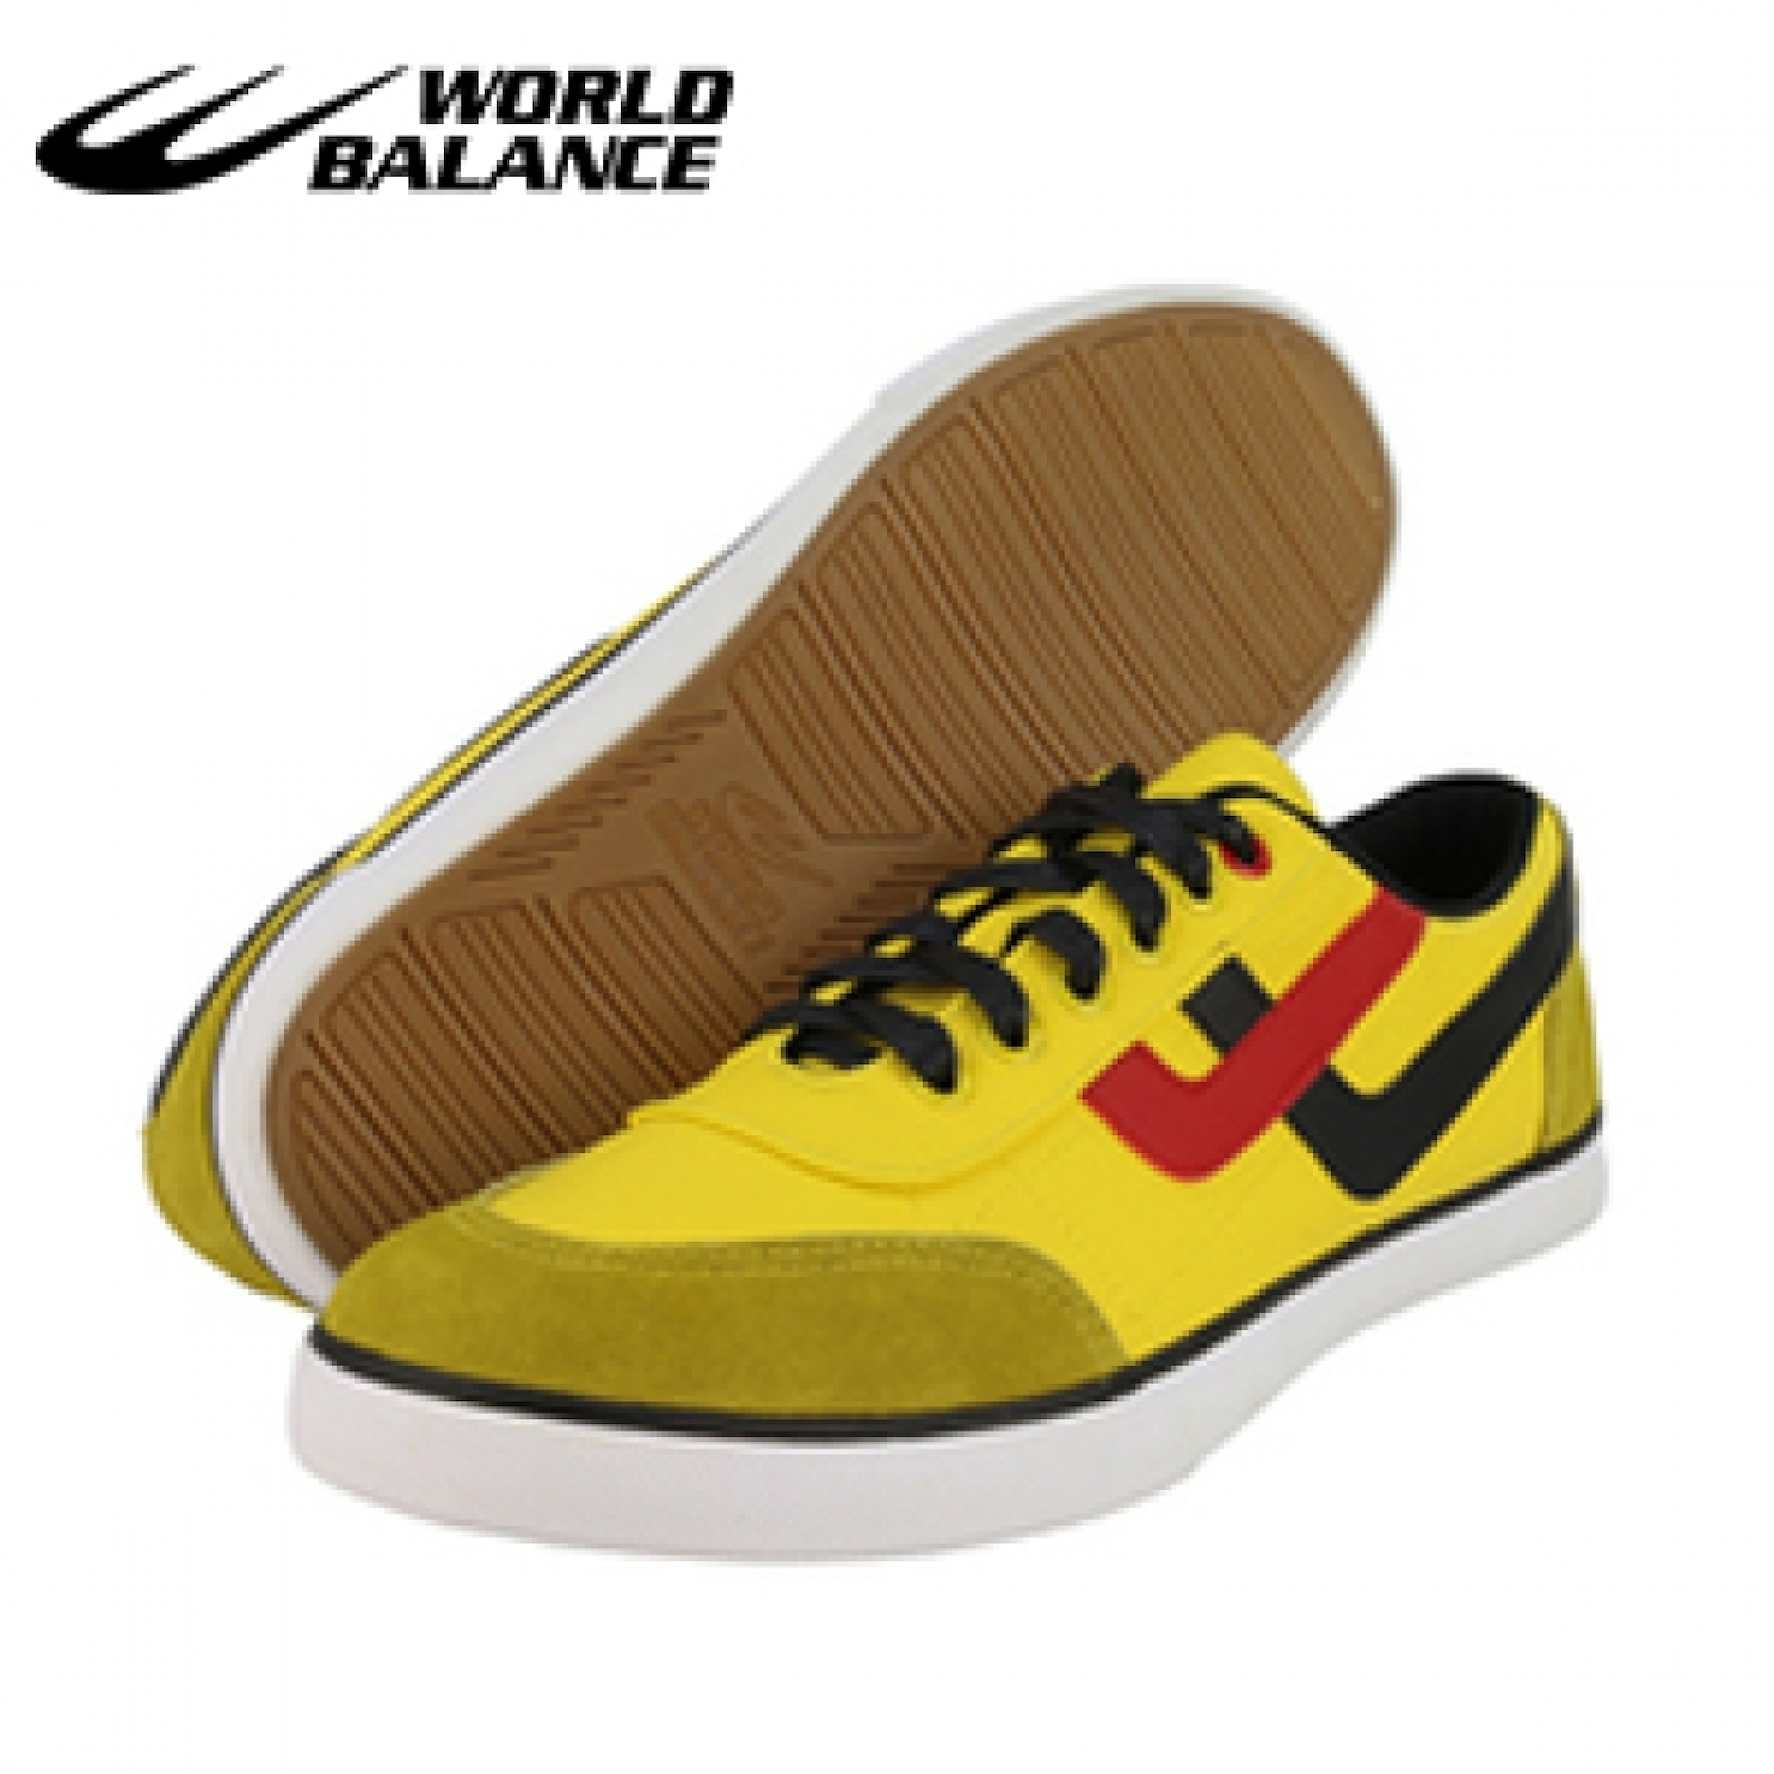 world balance shoes low cut